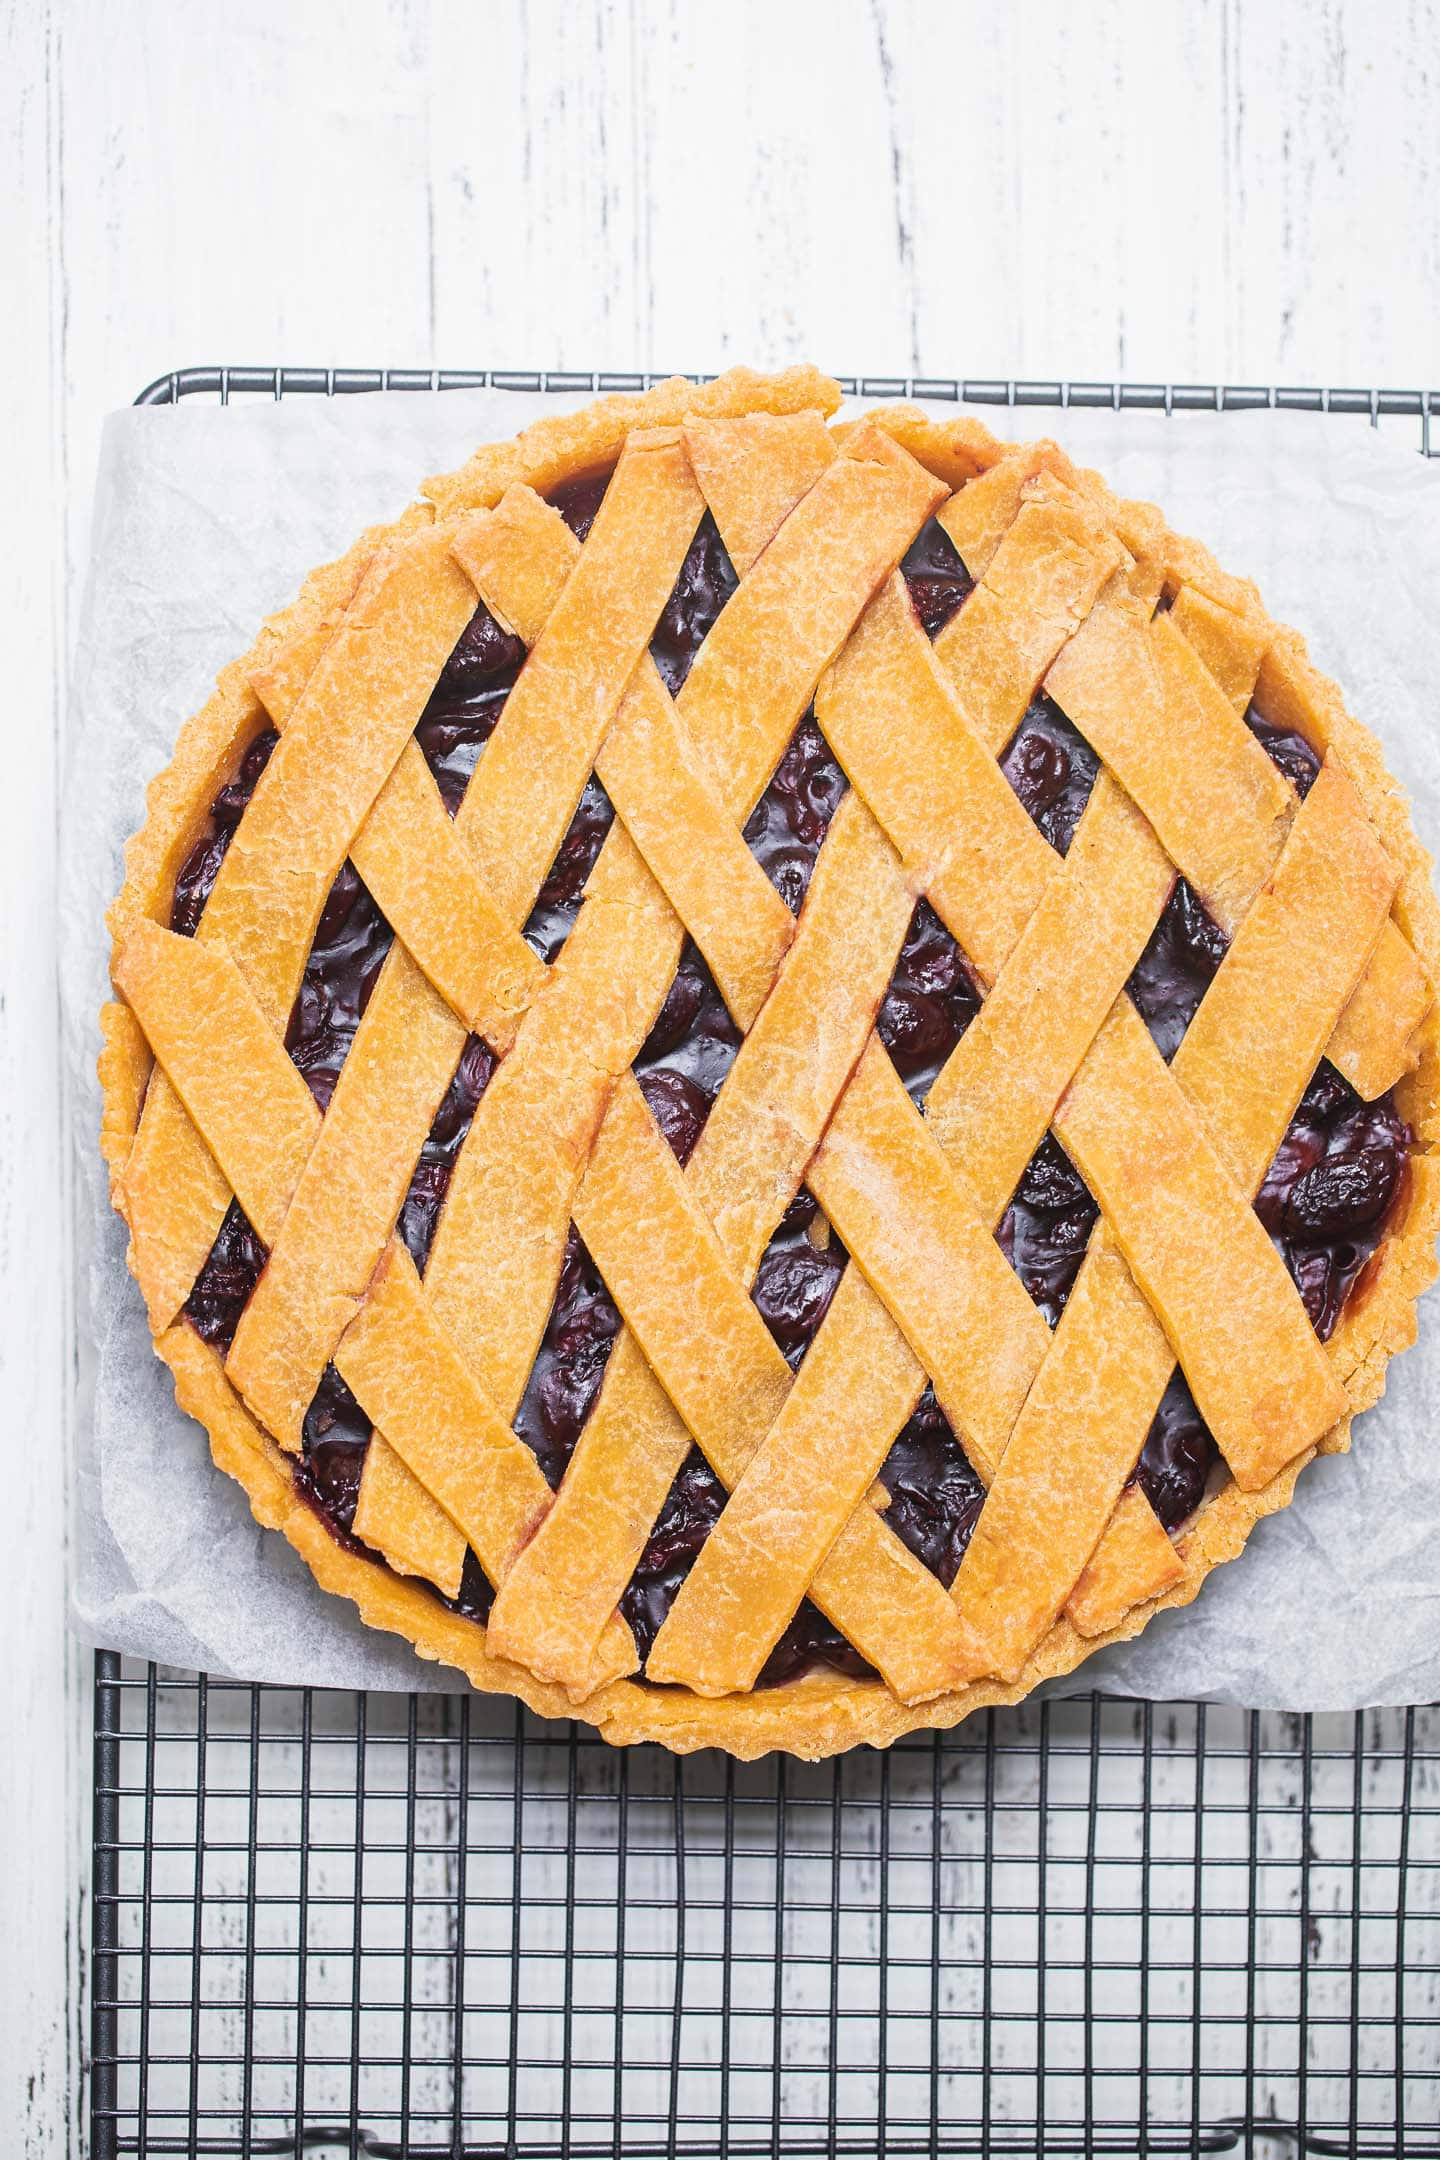 Gluten-free vegan cherry pie on a cooling rack